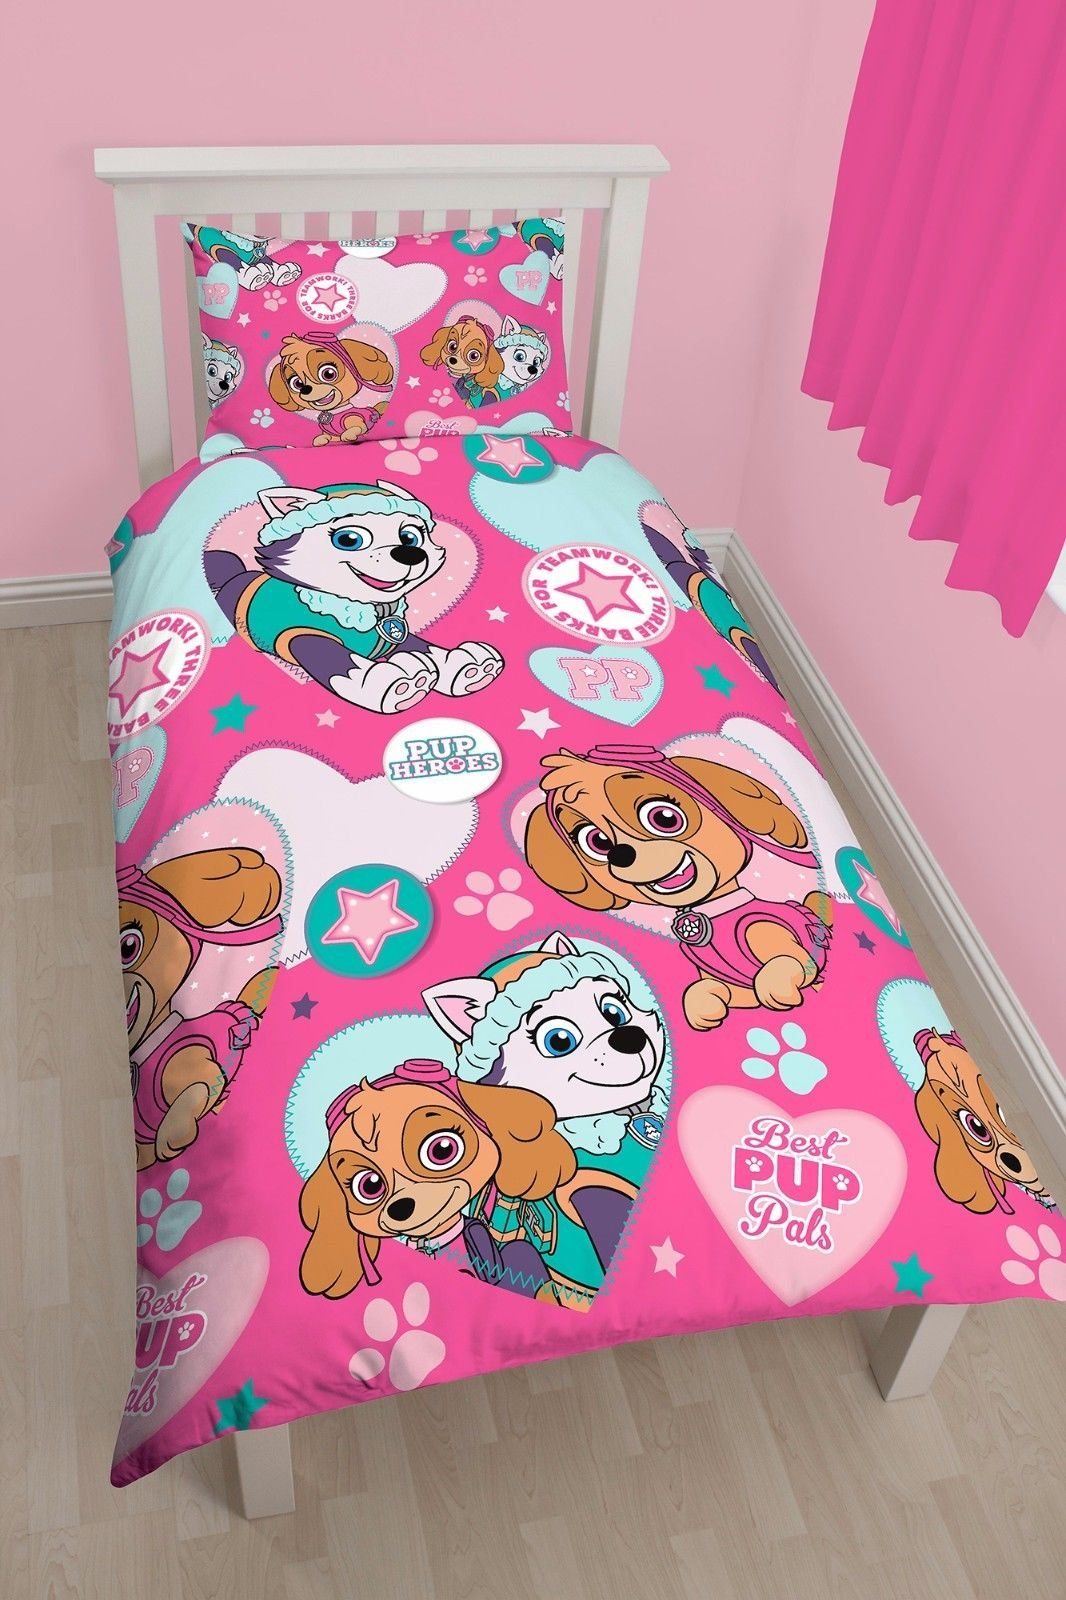 Official-Paw-Patrol-Licensed-Duvet-Covers-Single-Double-Chase-Skye-Marshall thumbnail 17